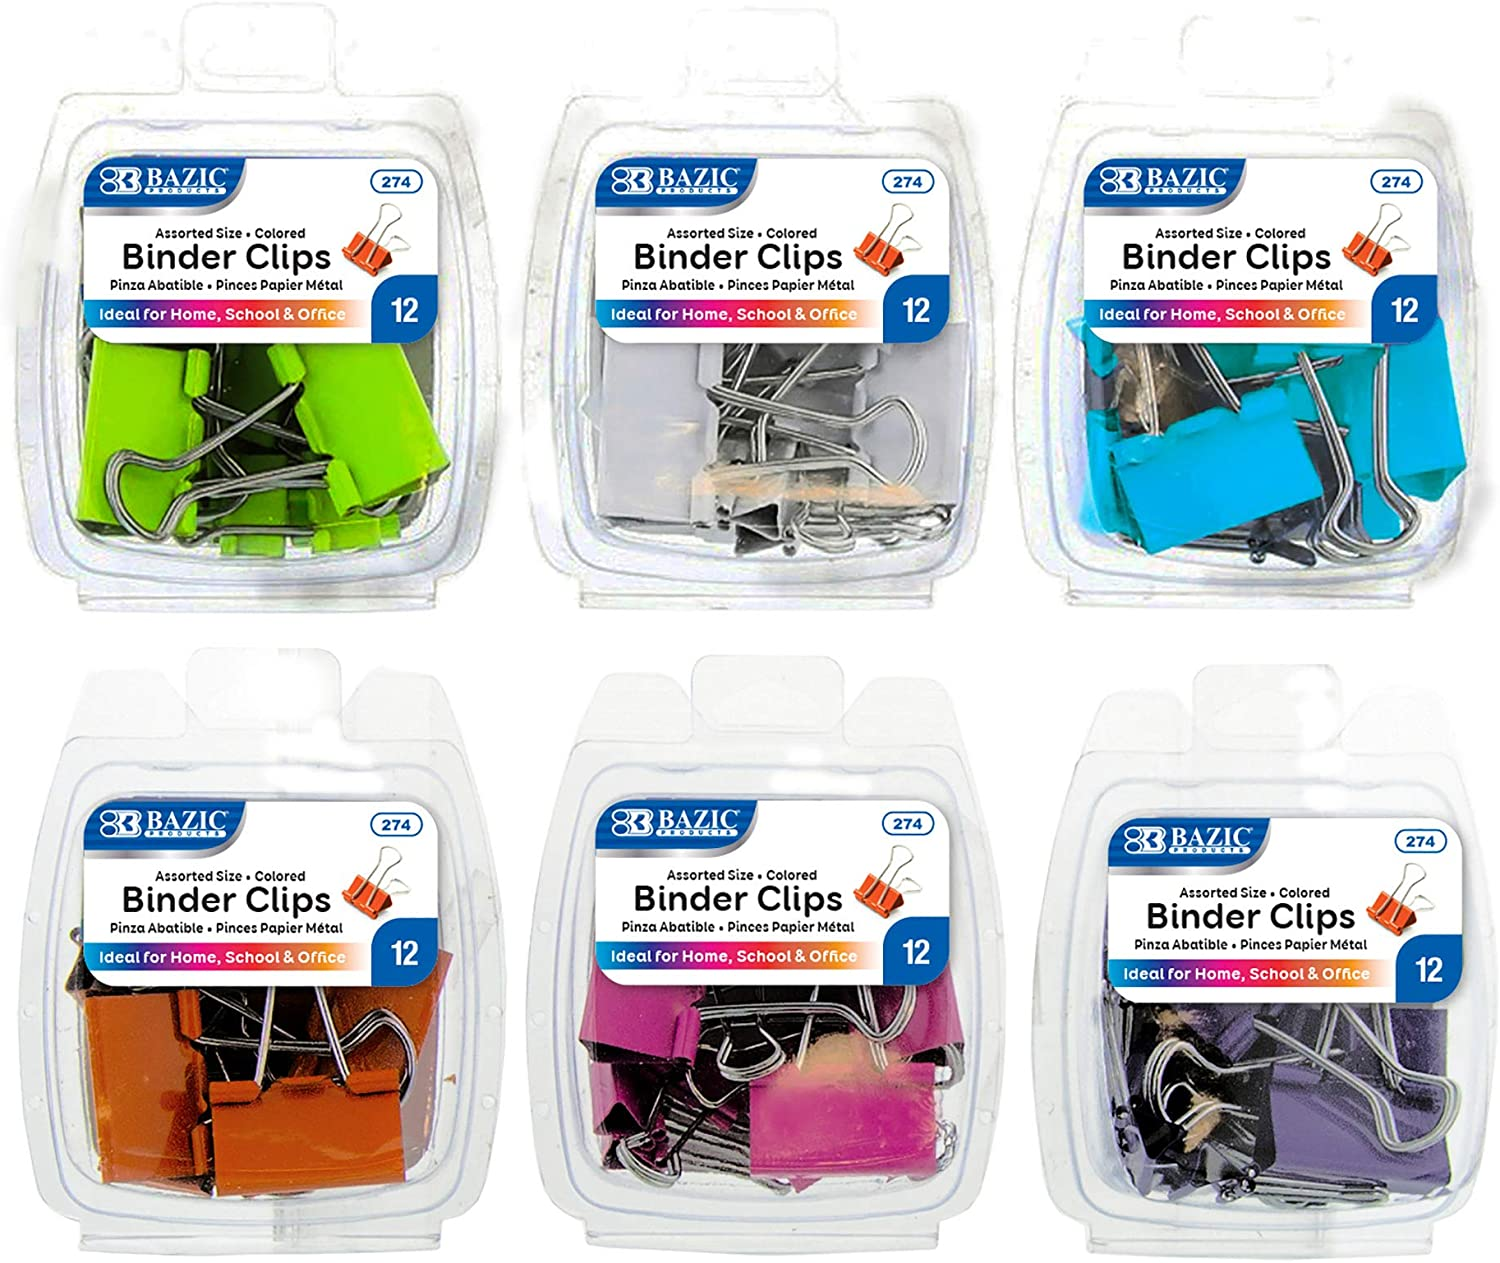 BAZIC Binder Clips Assorted Size Color Medium Pap Recommended Small Max 80% OFF Large